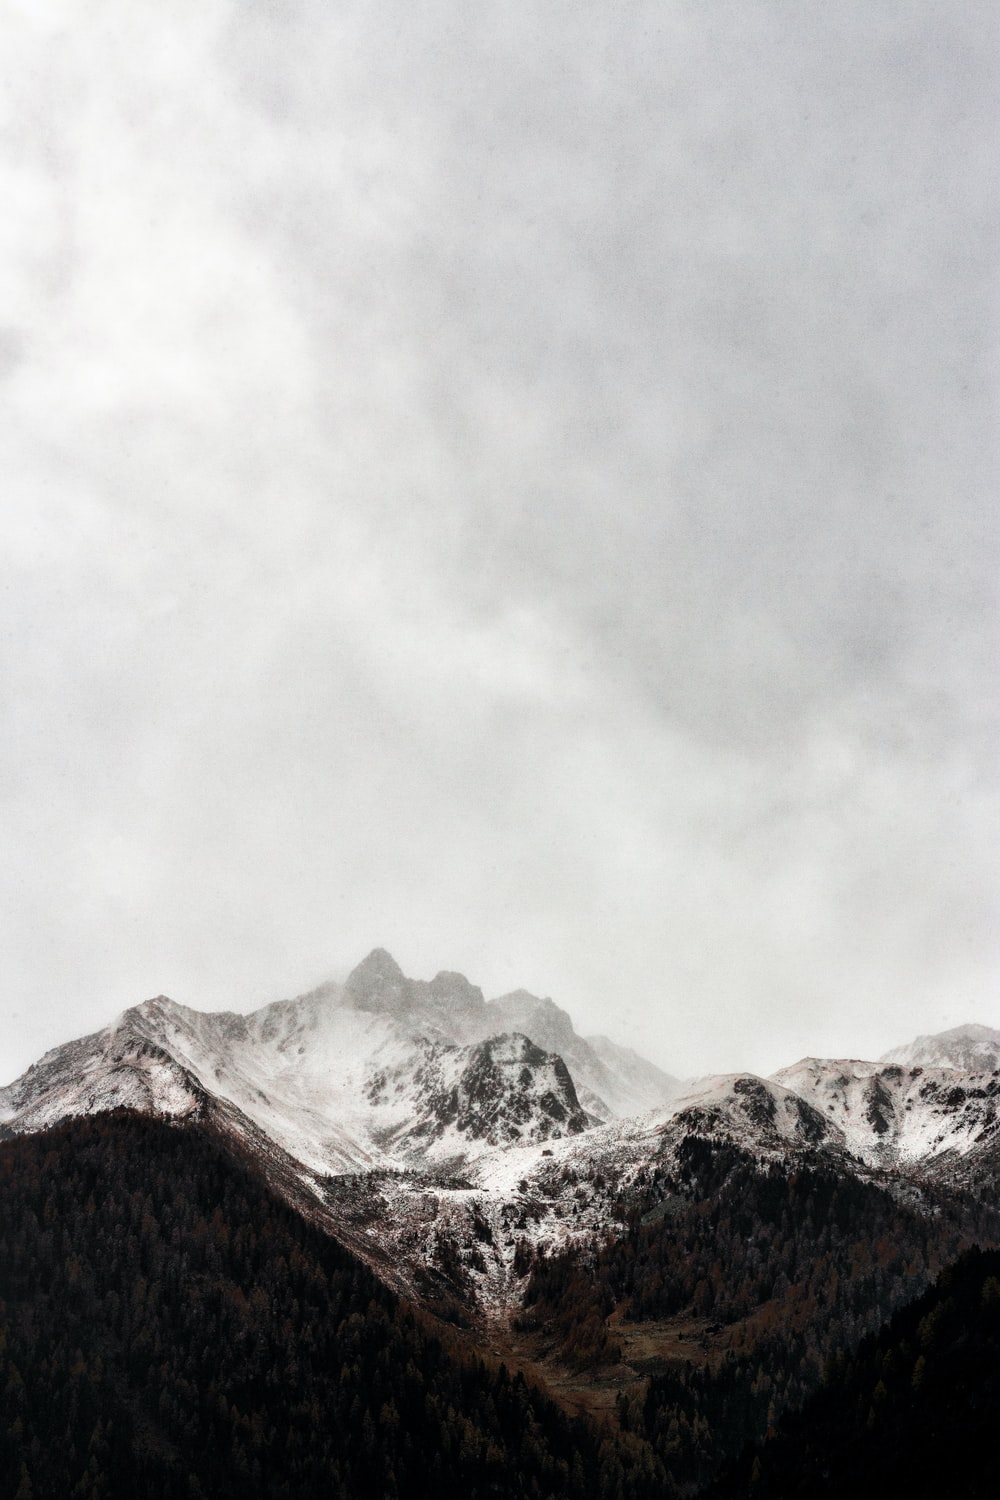 iced cap mountain under gray sky during daytime photography